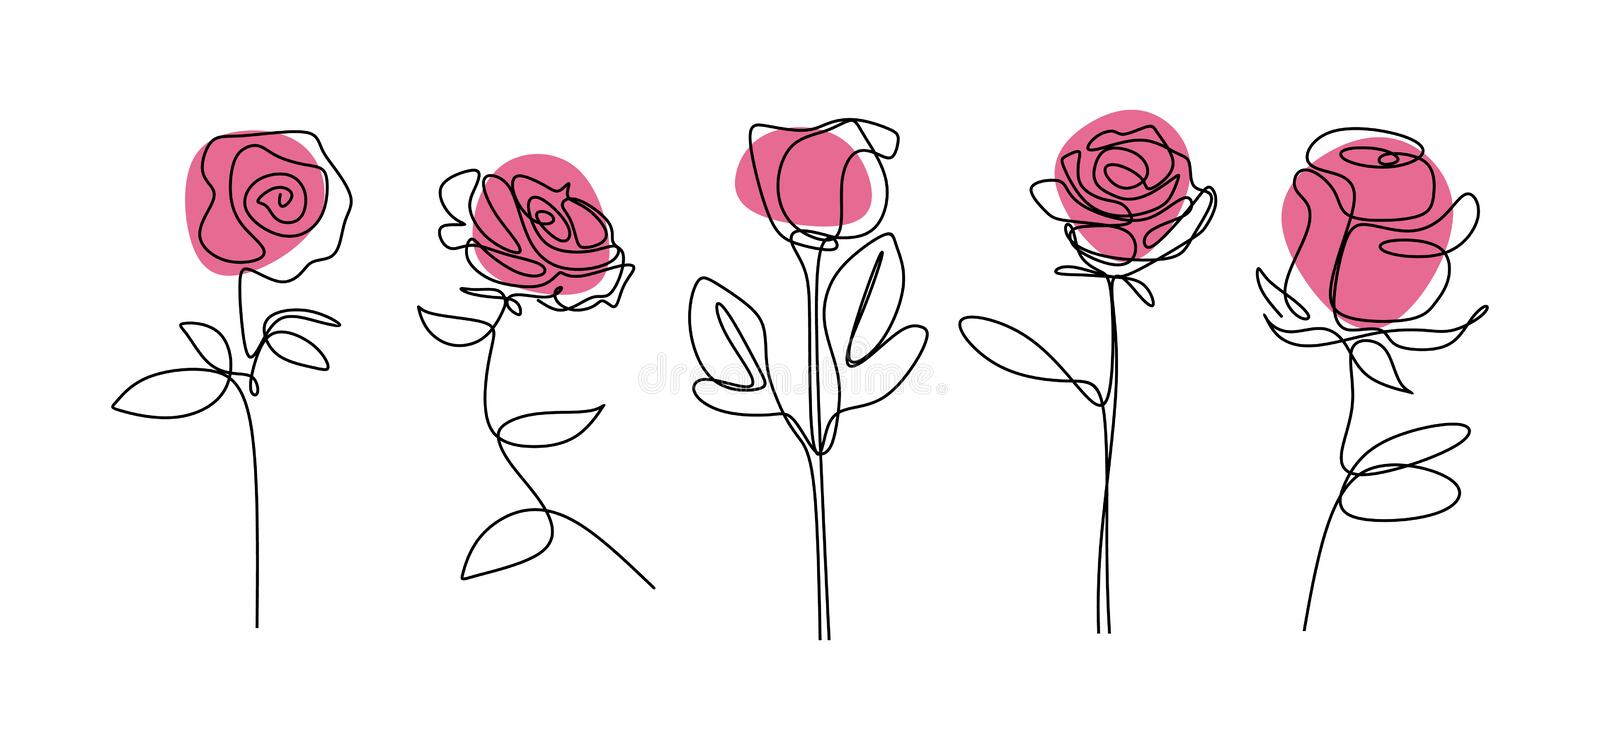 Rose flower continuous line drawing Minimalism floral botanical garden vector illustration. Single hand drawn set element royalty free illustration